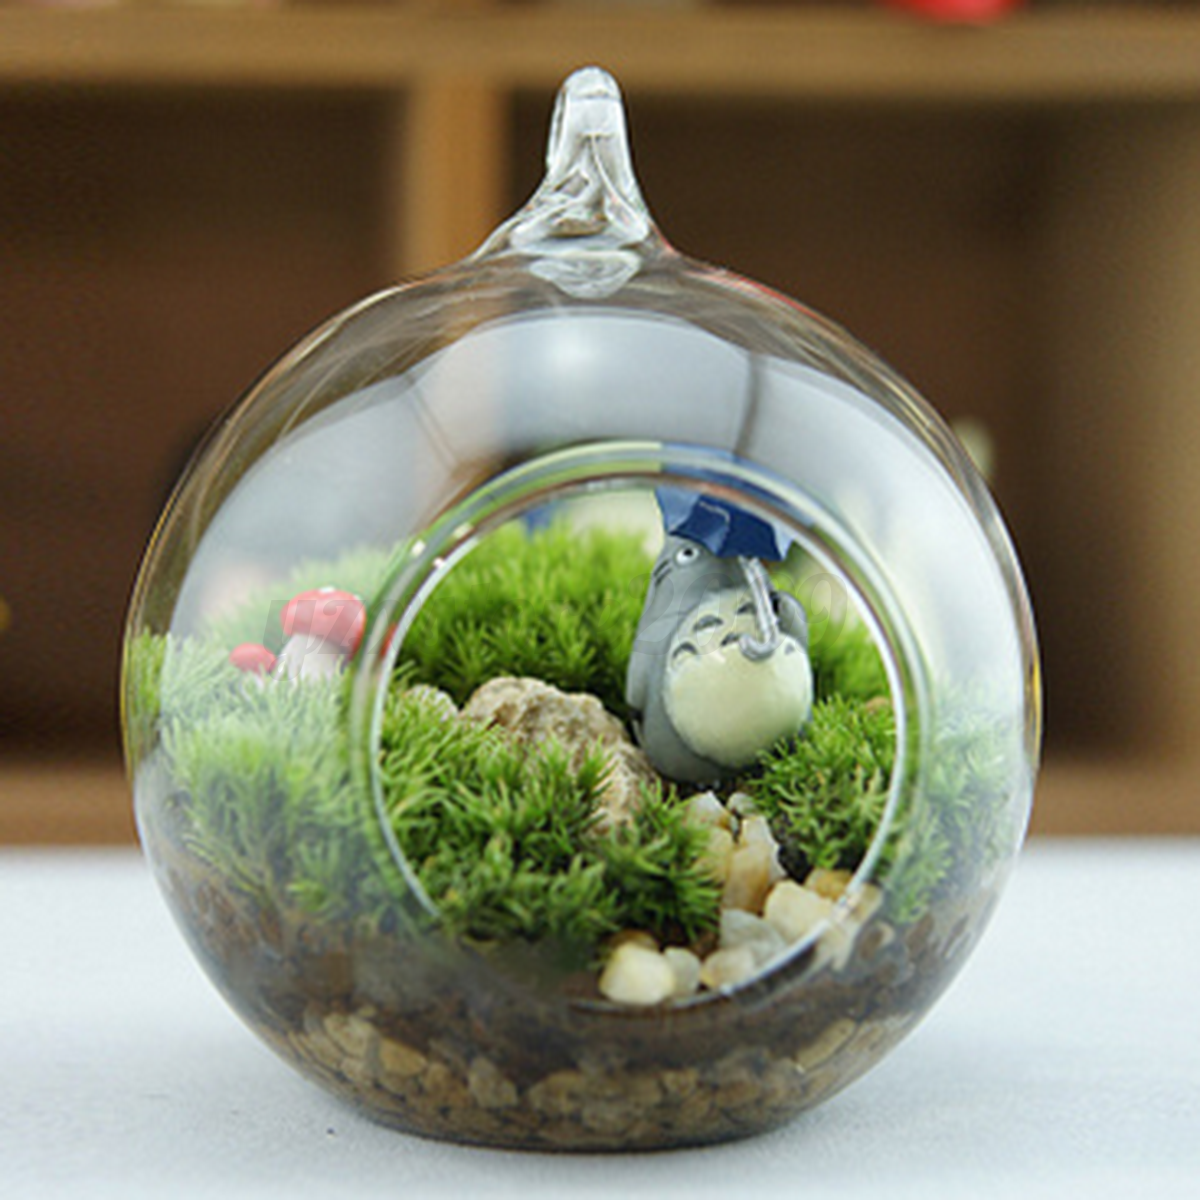 Garden Ornamental Glass Balls